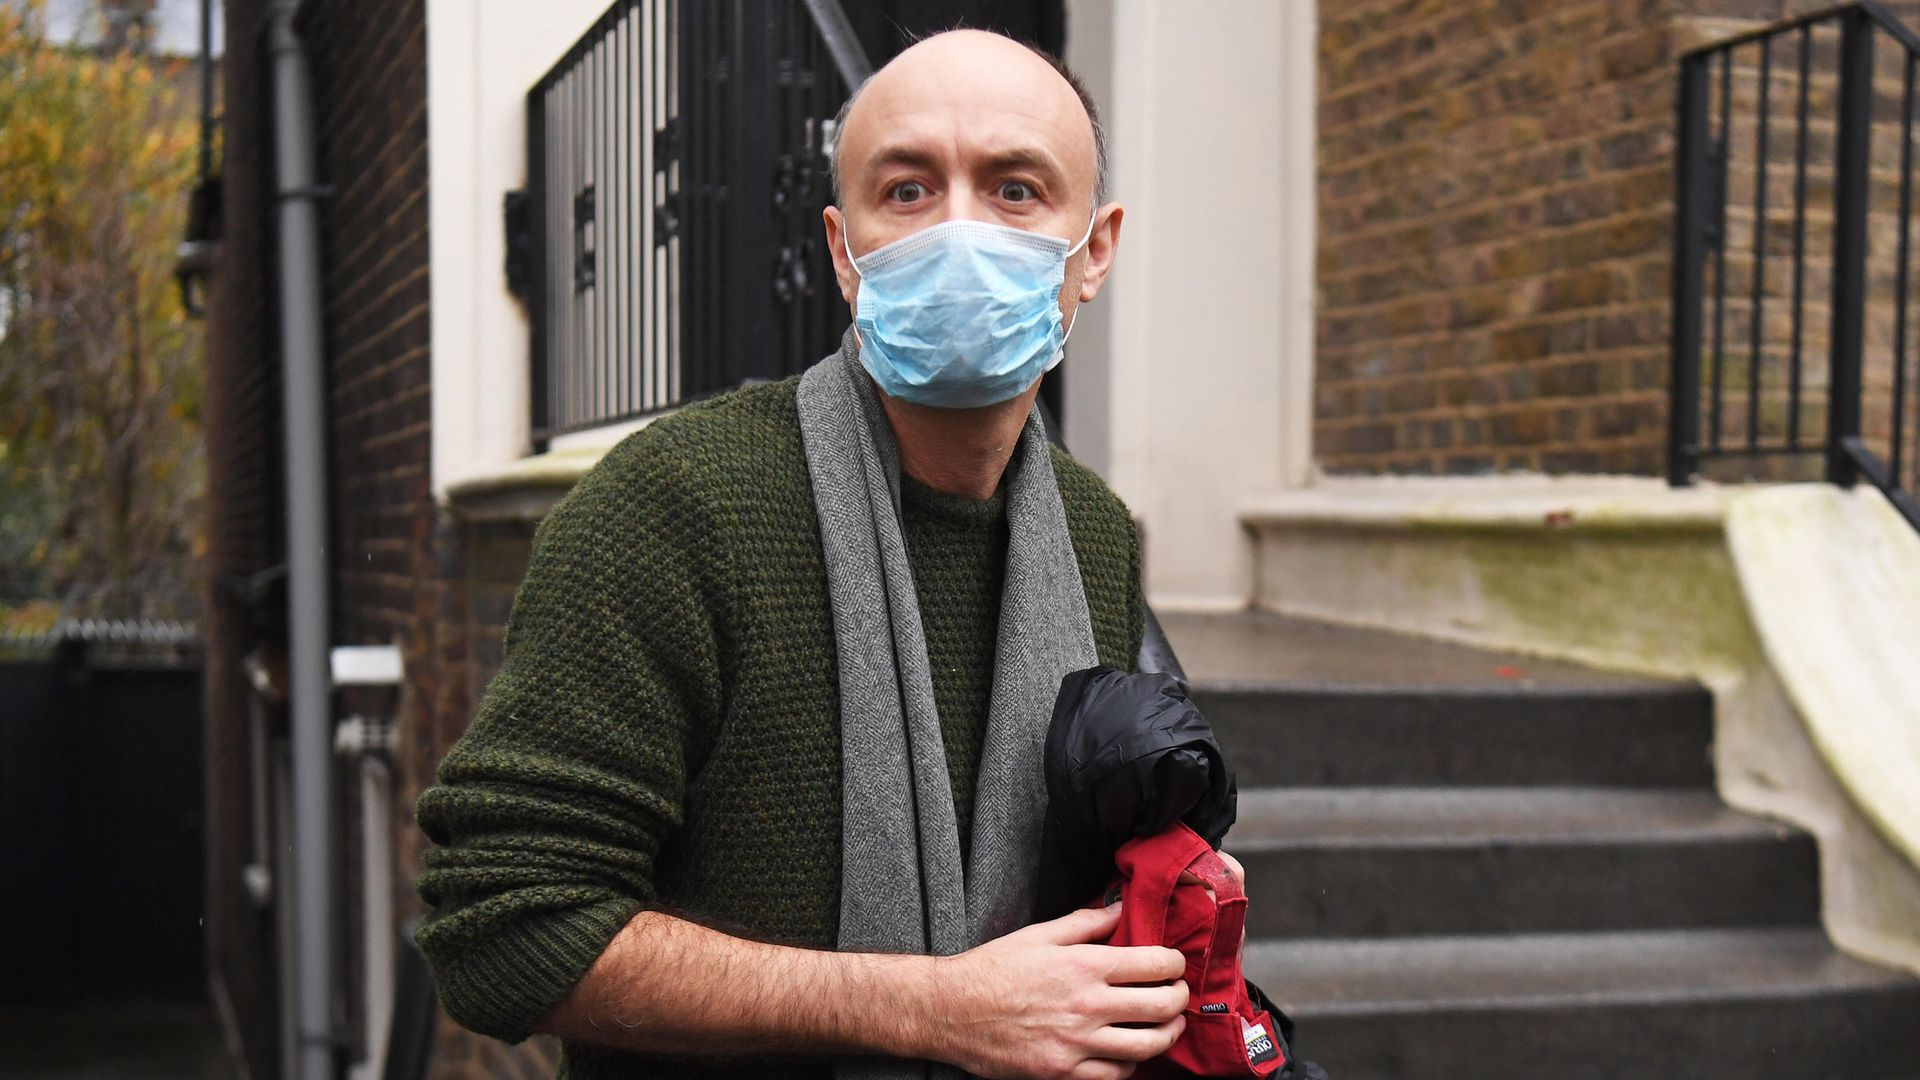 A High Court judge is pondering whether to proceed with a case against Dominic Cummings (pictured above), which accuses him of awarding government contracts to friends during the pandemic - Credit: PA